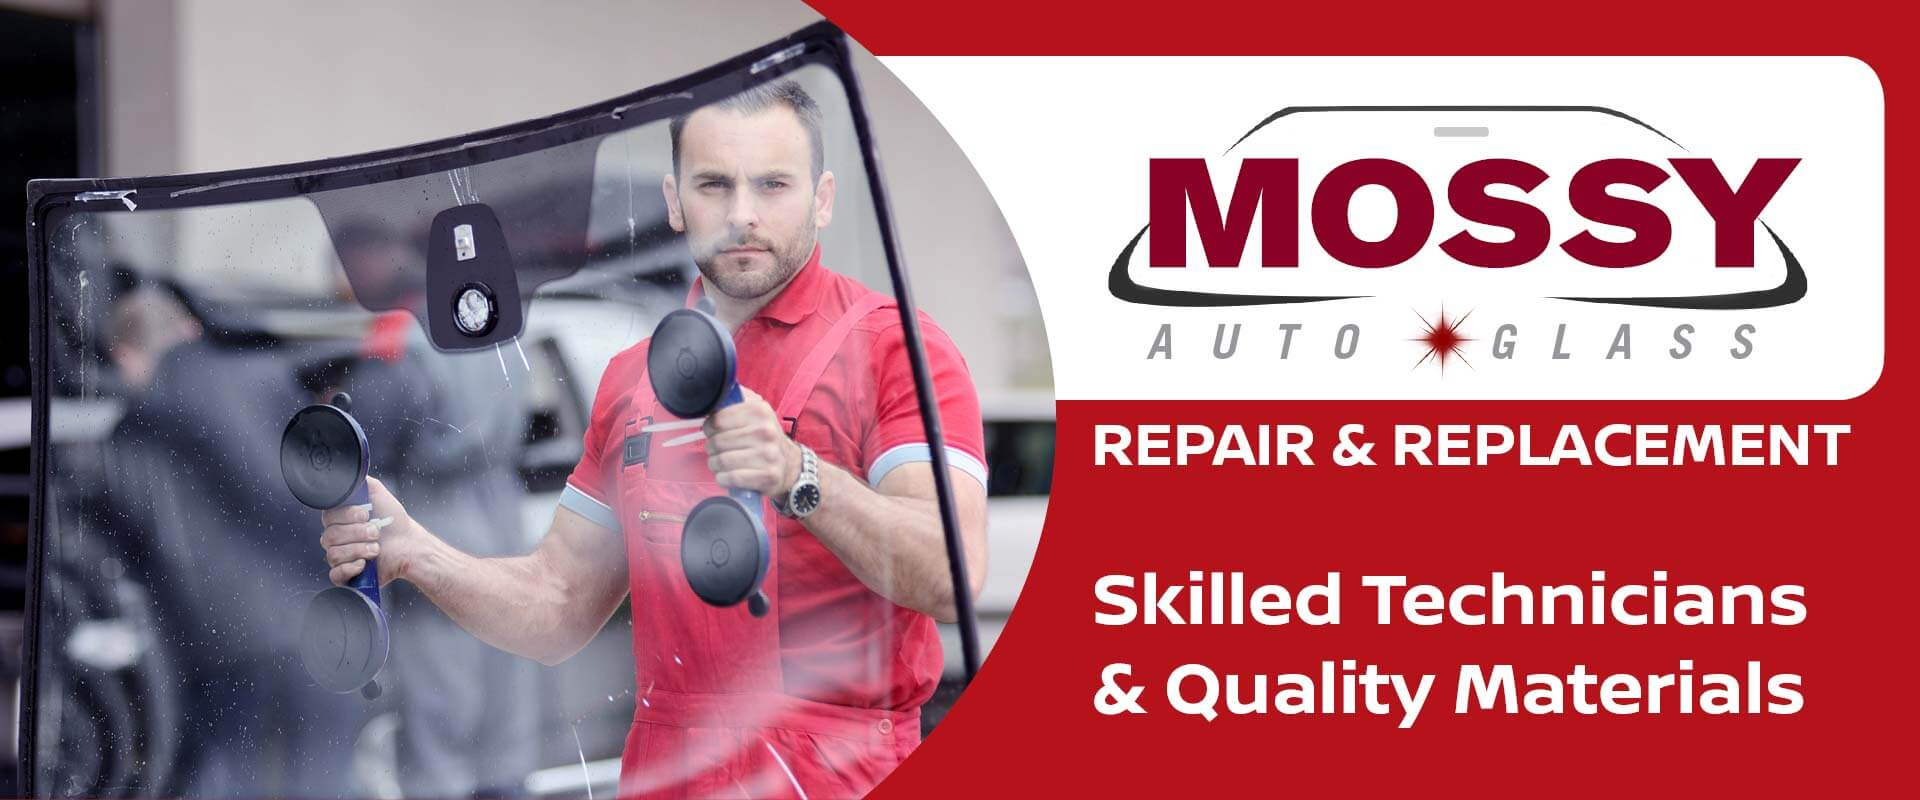 Mossy Auto Glass Repair and Replacement